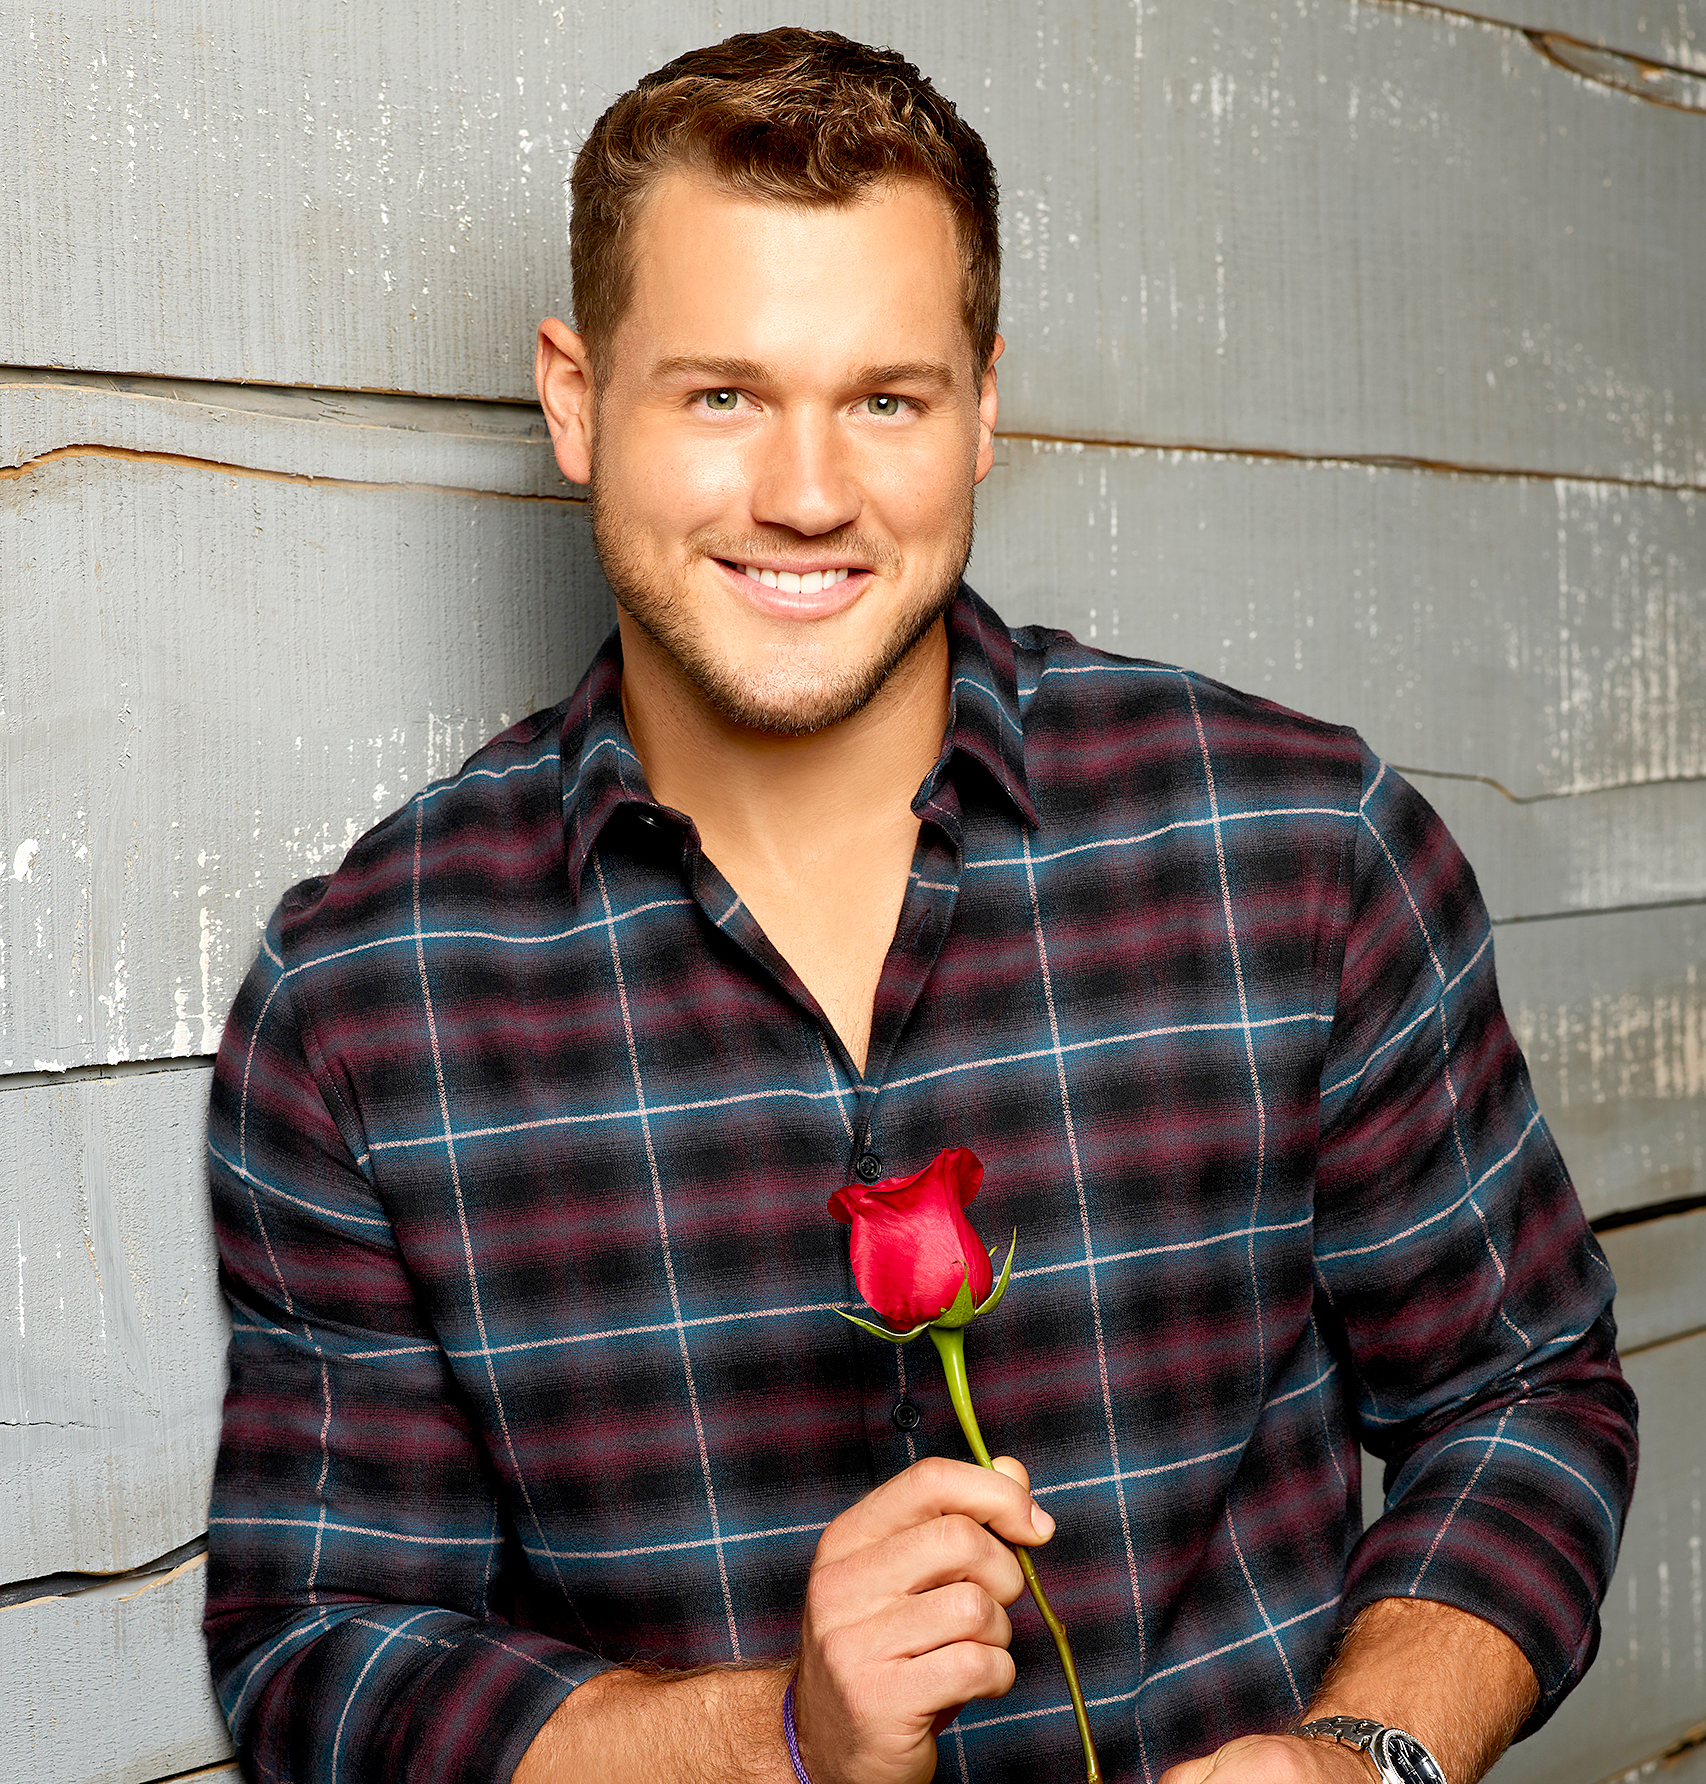 Colton-Underwood-virgin cocktails - During one of the most unconventional endings in Bachelor history, Colton ended his respective relationships with Hannah Godwin and Tayshia Adams to pursue a relationship with Cassie Randolph , who left the show during the fantasy suite dates because she was having doubts. While the former NFL player and Cassie got back together during the finale, Colton did not pop the question.